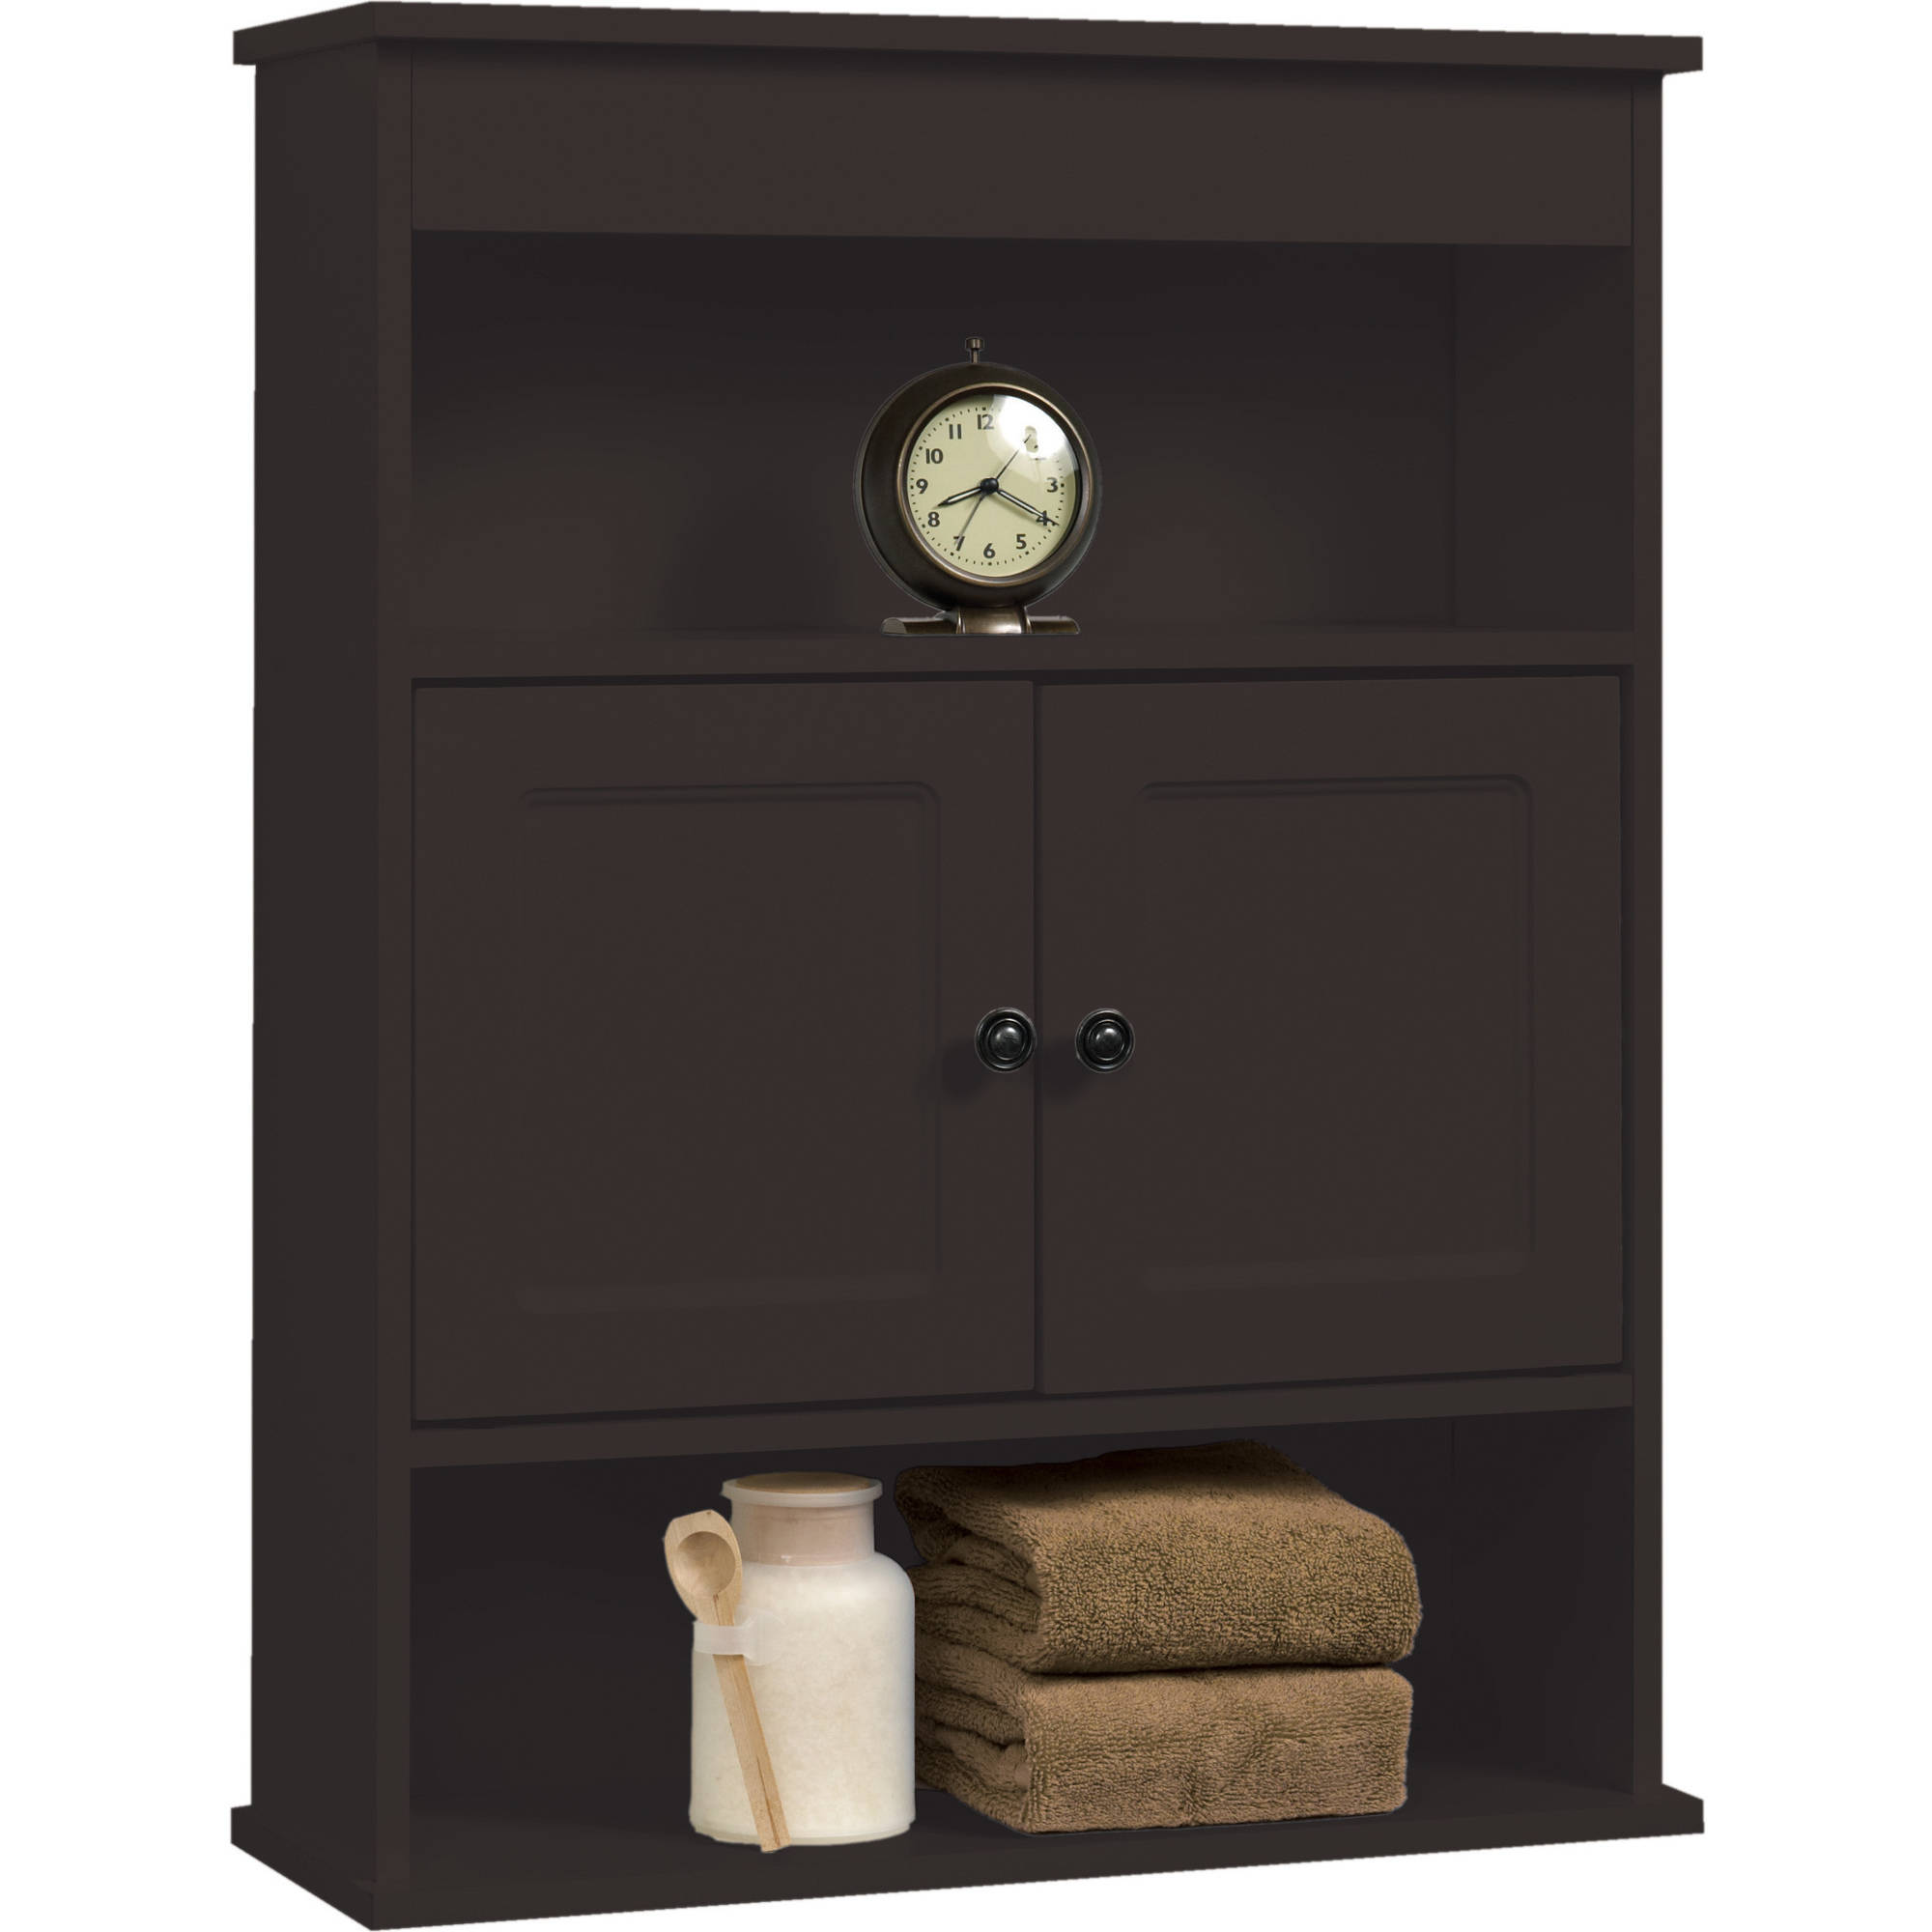 lovely teak range furniture the of quality a aquatrend wall inch beautiful to brand set double ideas vanity related mounted offers cabinet largo bathroom mount fresca post